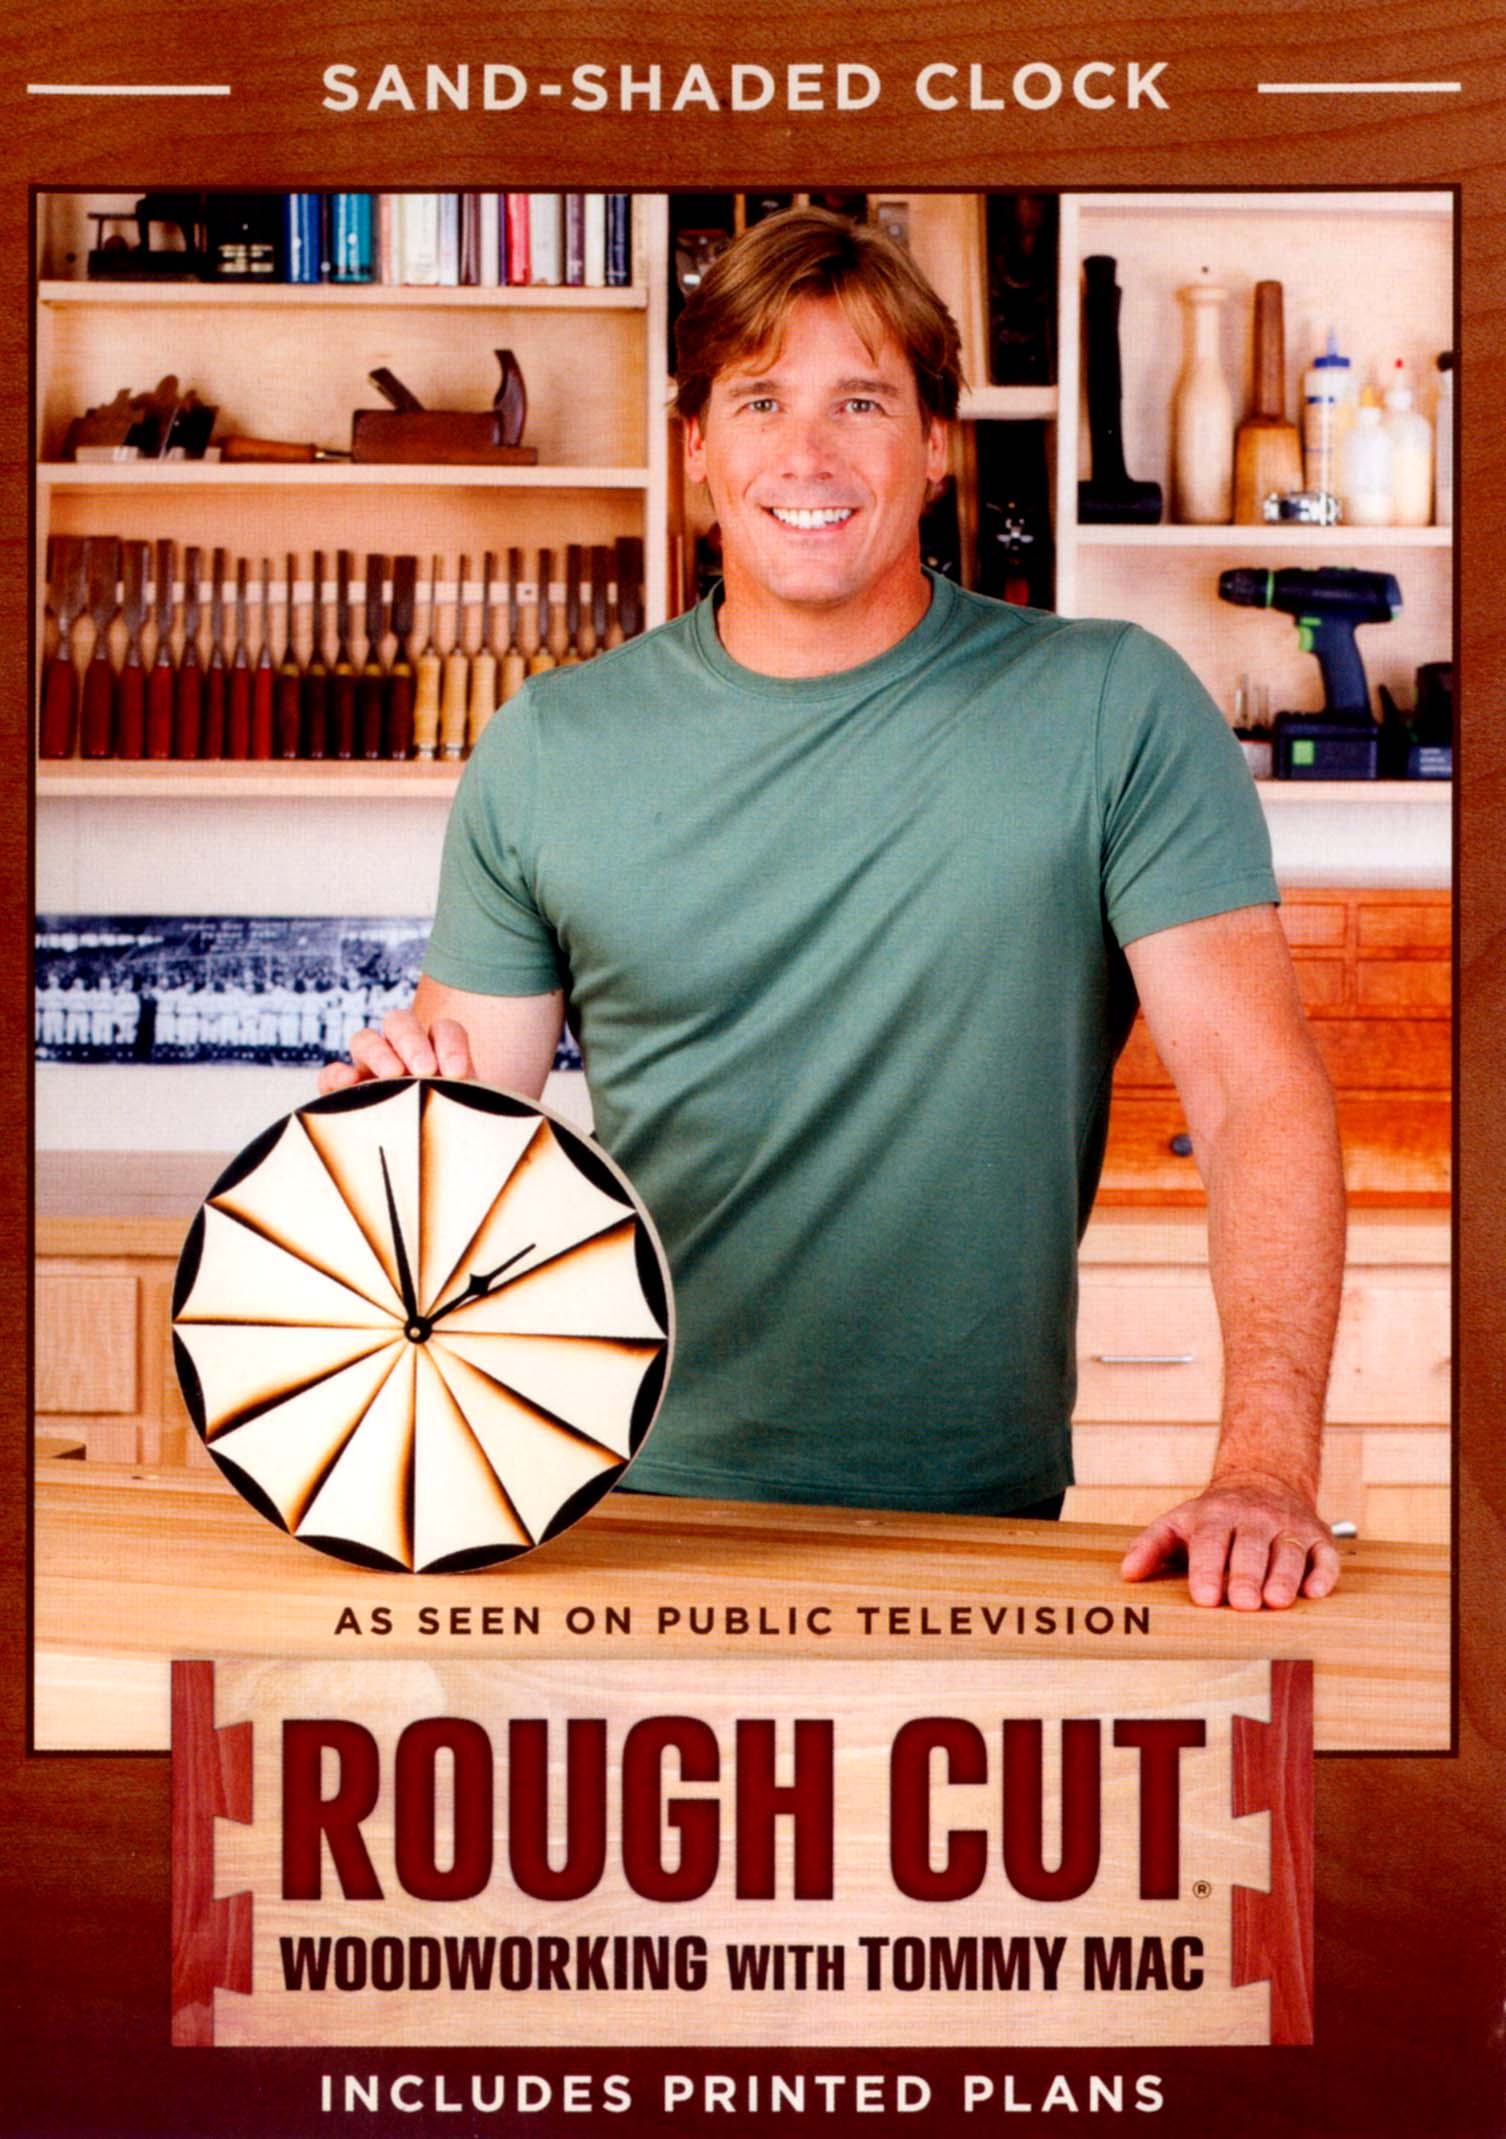 Rough Cut - Woodworking with Tommy Mac: Sand Shaded Clock